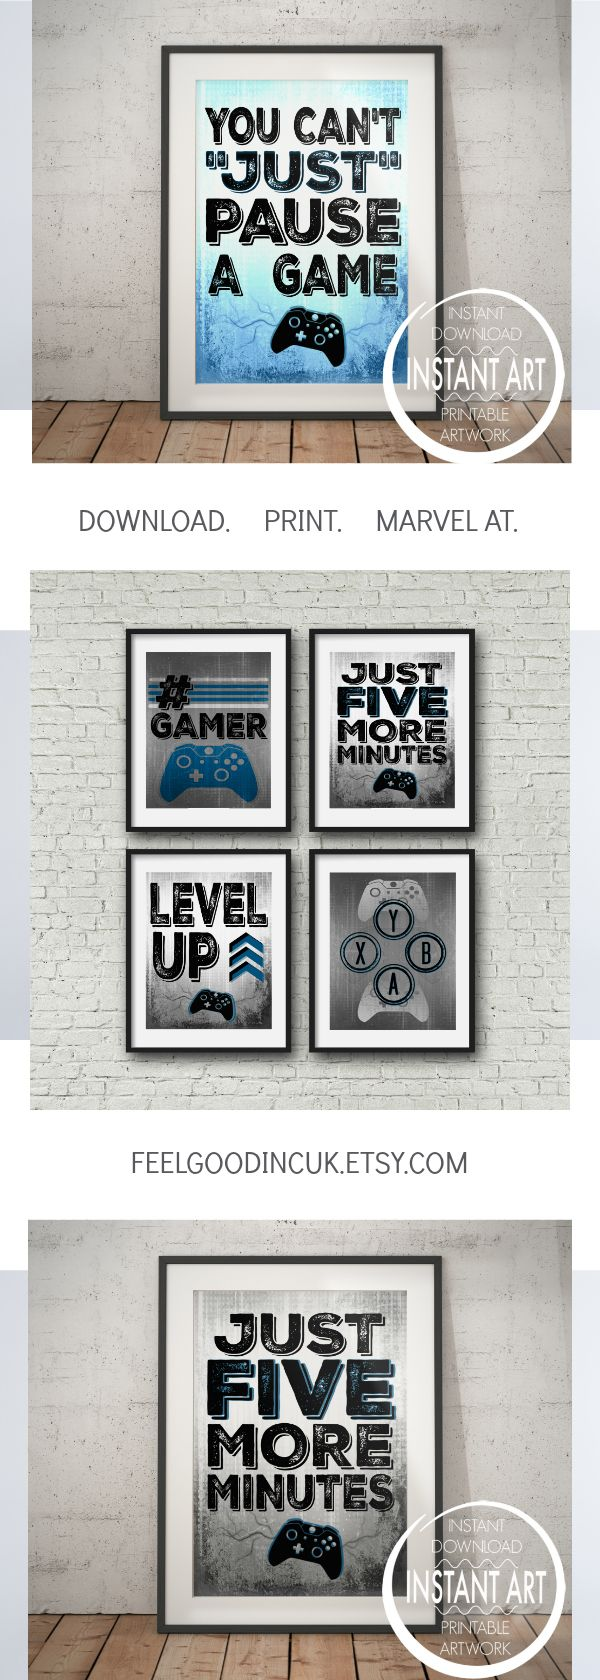 PIN TO save for later  CLICK to view this and other designs - shop now!  Introducing the latest editions to the huge range of video game posters. Take a look!  Feelgoodincuk.etsy.com   Gamer - Teenage Bedroom - Kids Room - Game Room - Video Game Poster - Video Games - Man Cave  #gamer #teenagebedroom #kidsroom #justfivemoreminutes #justfiveminutes #videogames #videogameposter #gamingrooms